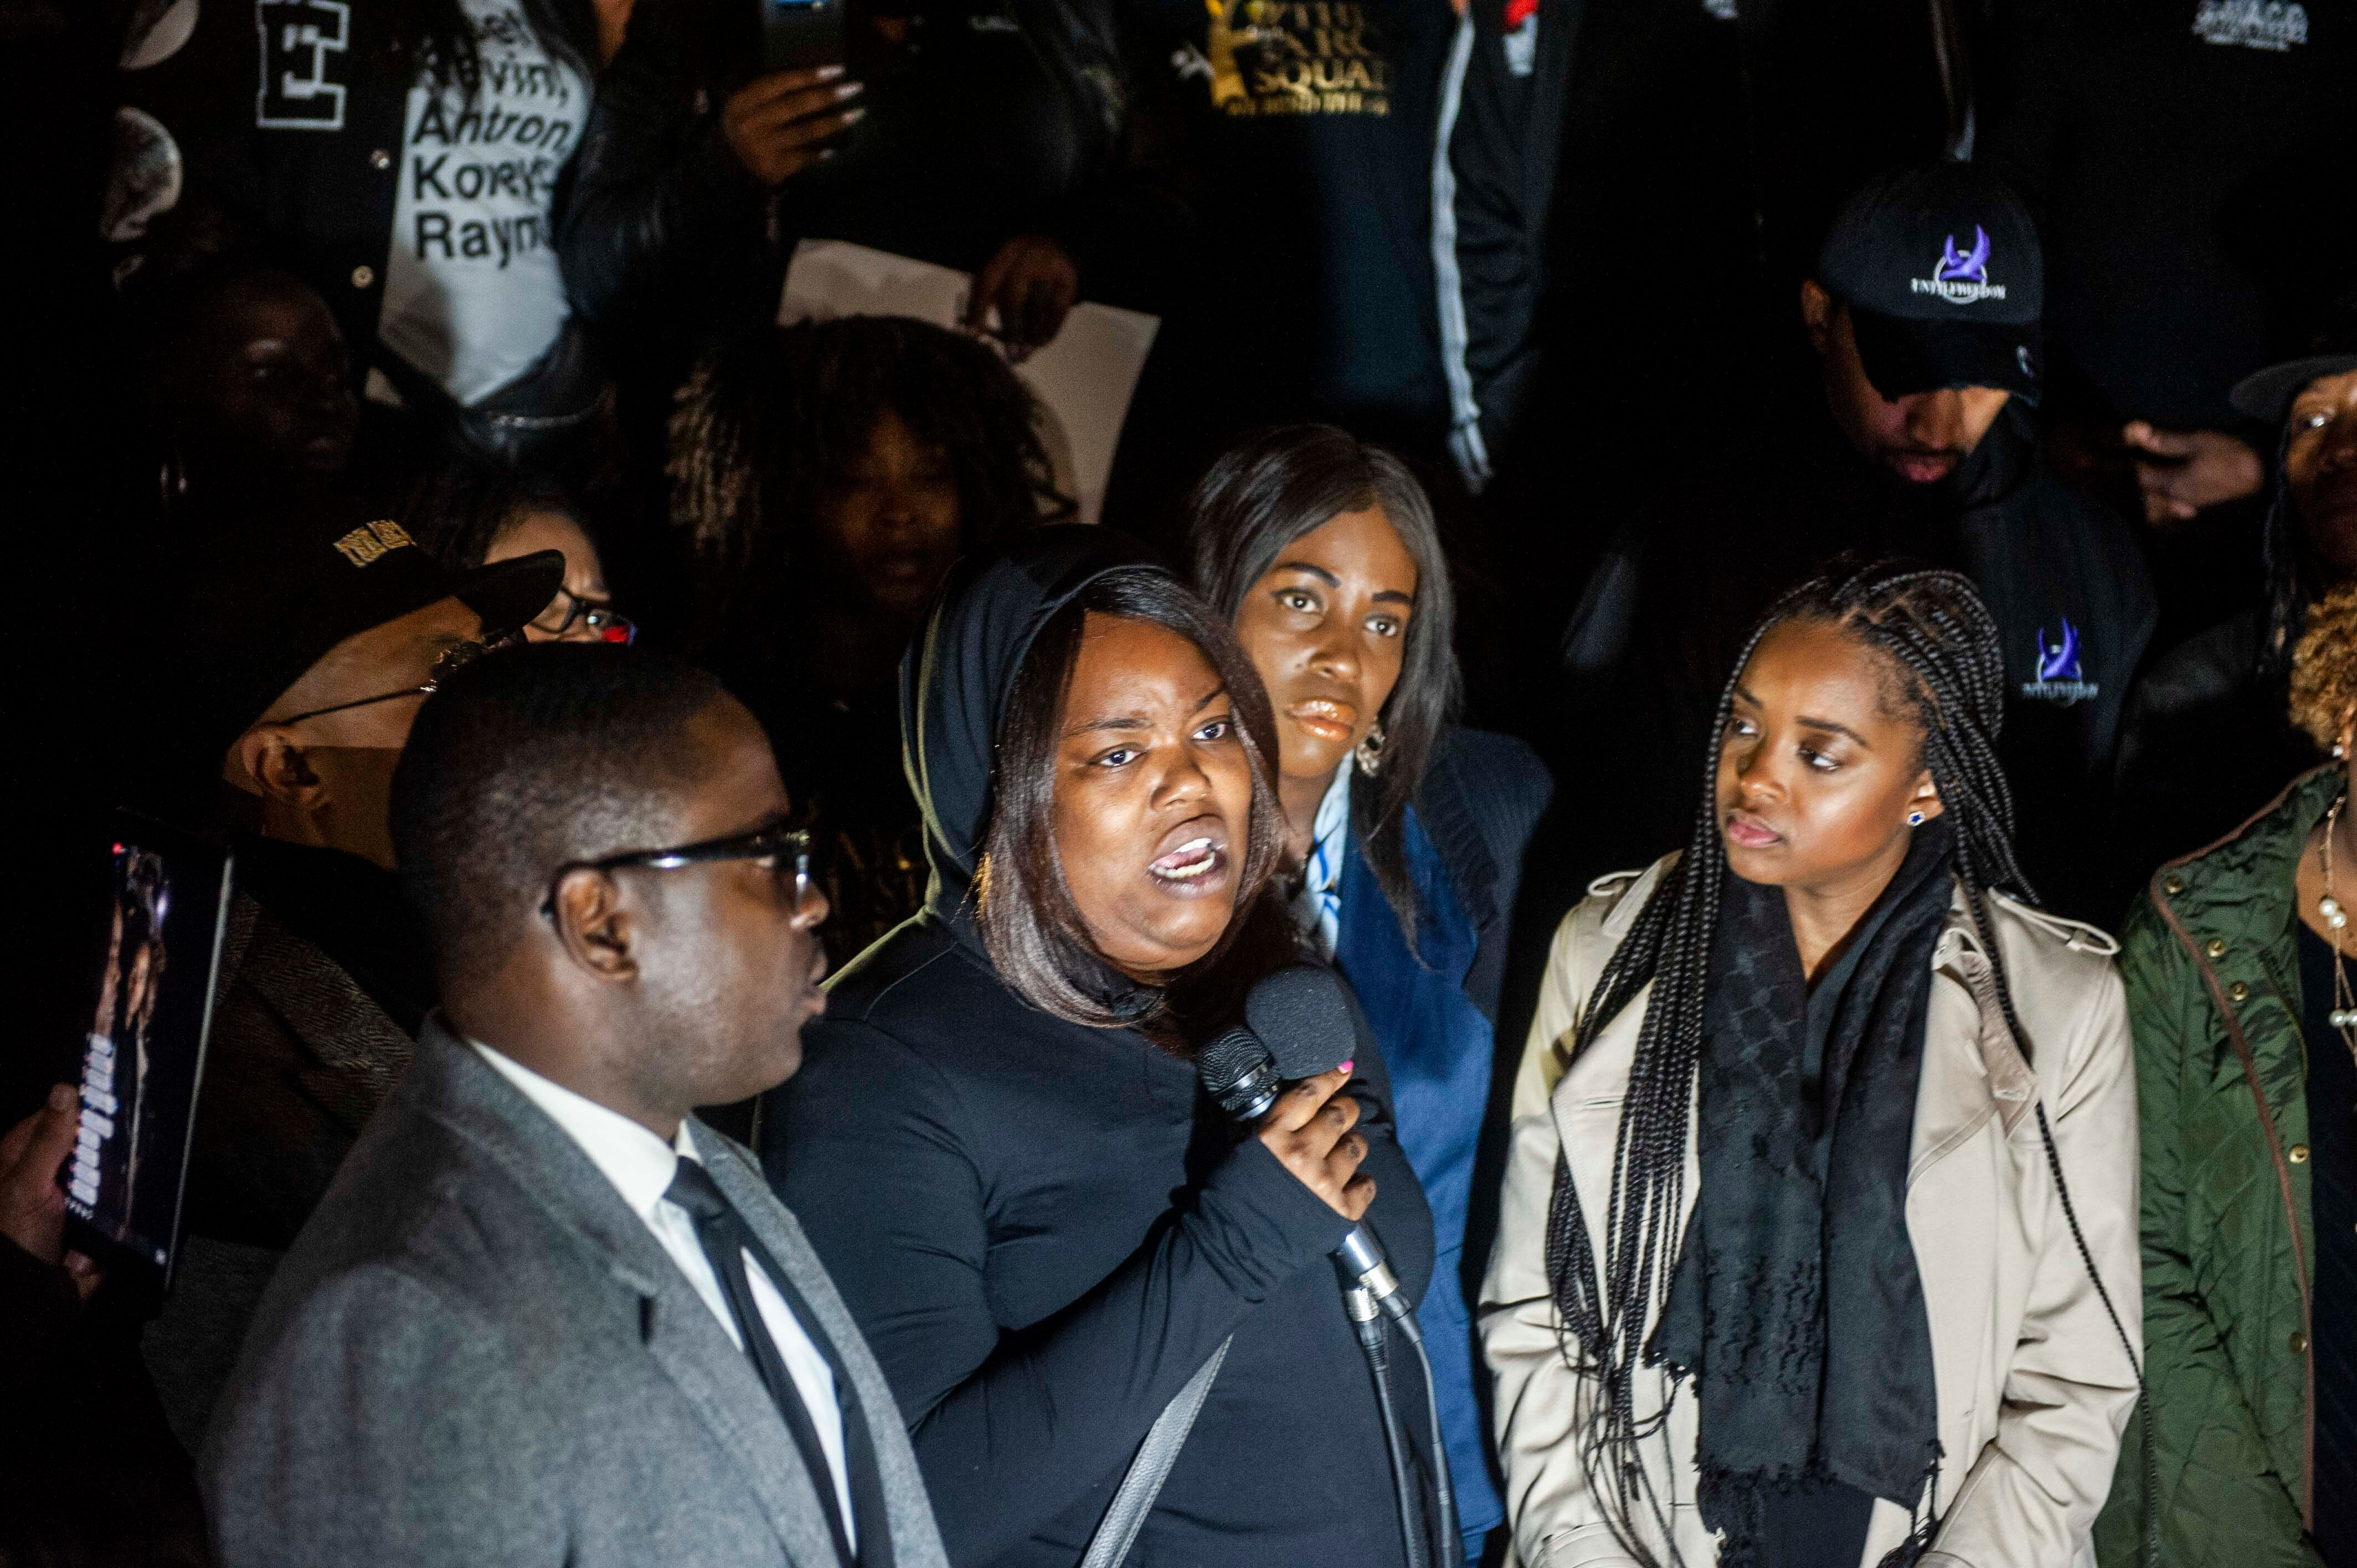 Ashley Carr speaks about her sister during the protest.